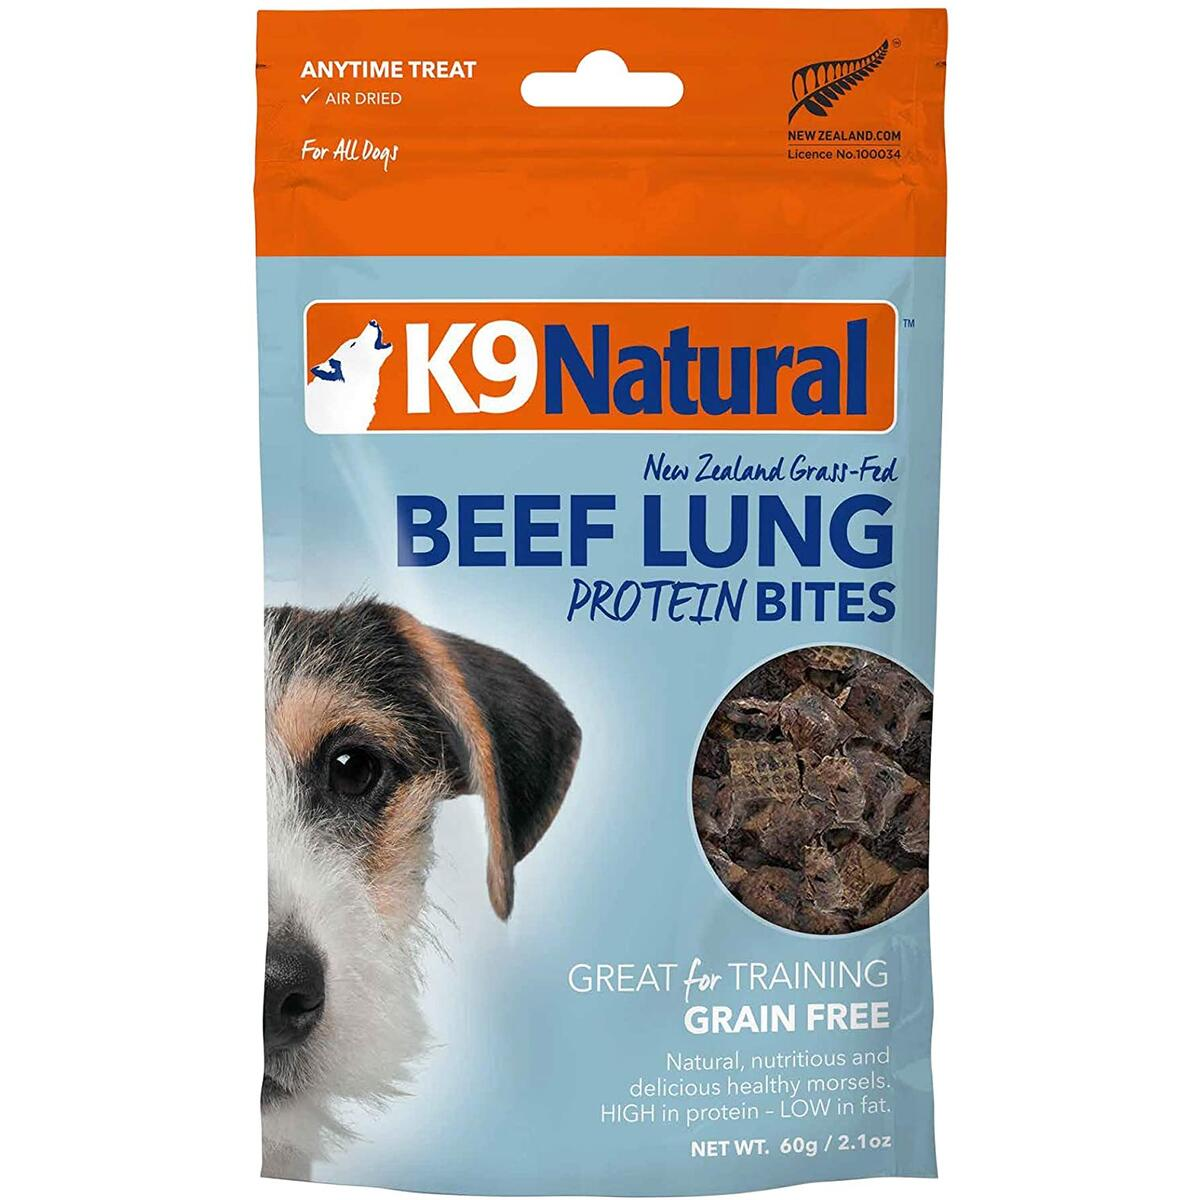 K9 Natural Grain-Free Air Dried Dog Treat Beef Protein Bites